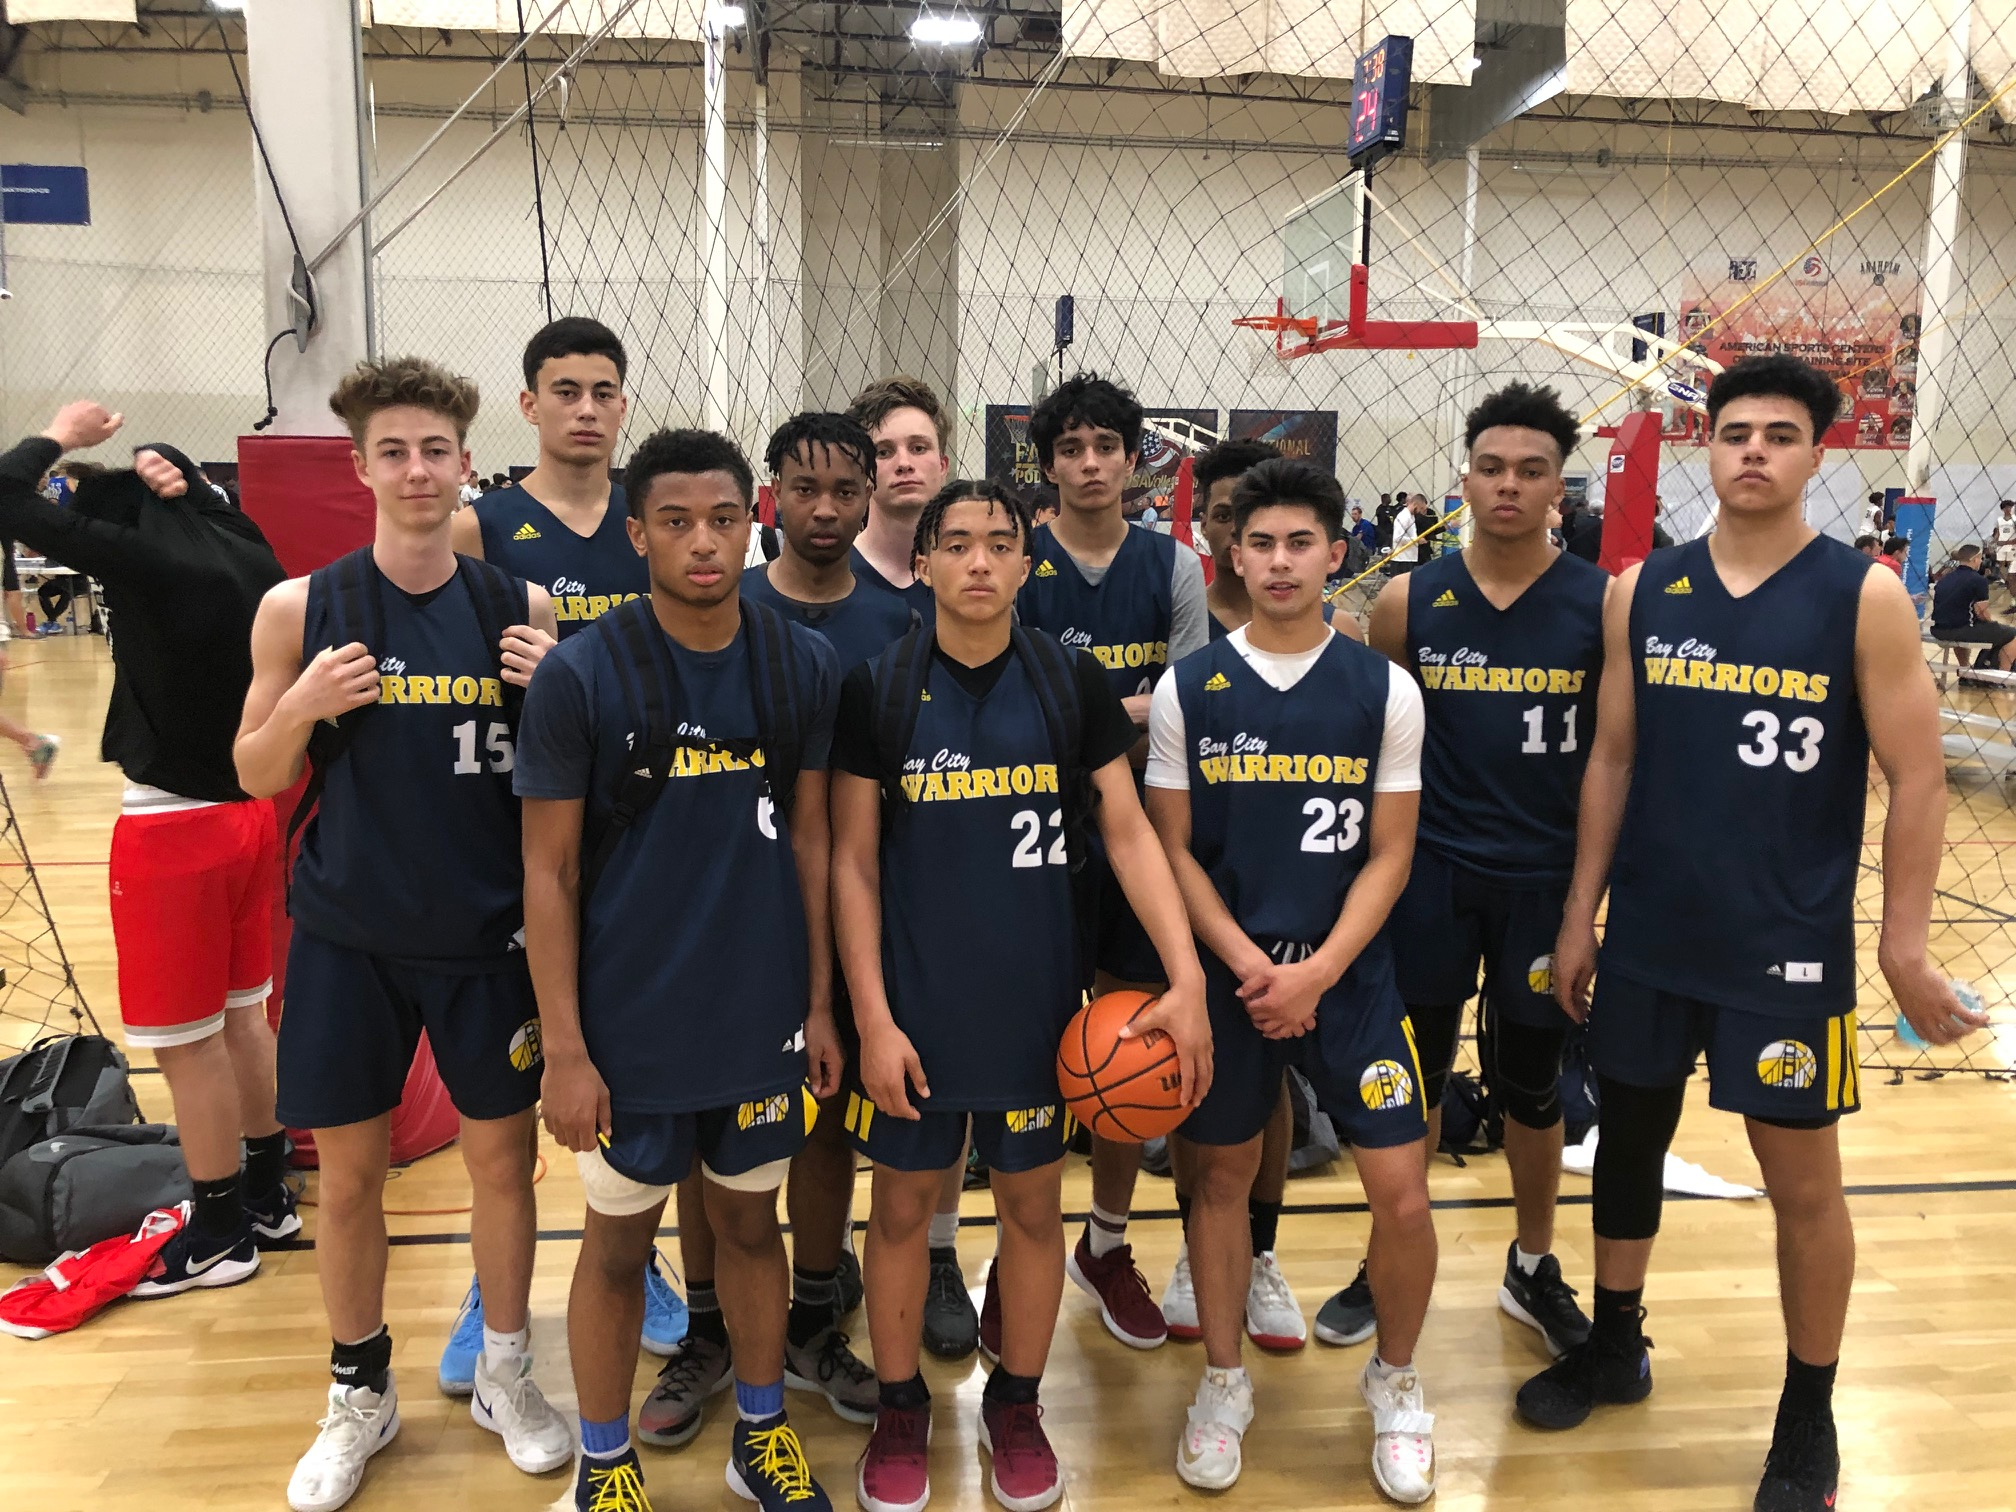 Bay City Warriors 17s 2019.jpg